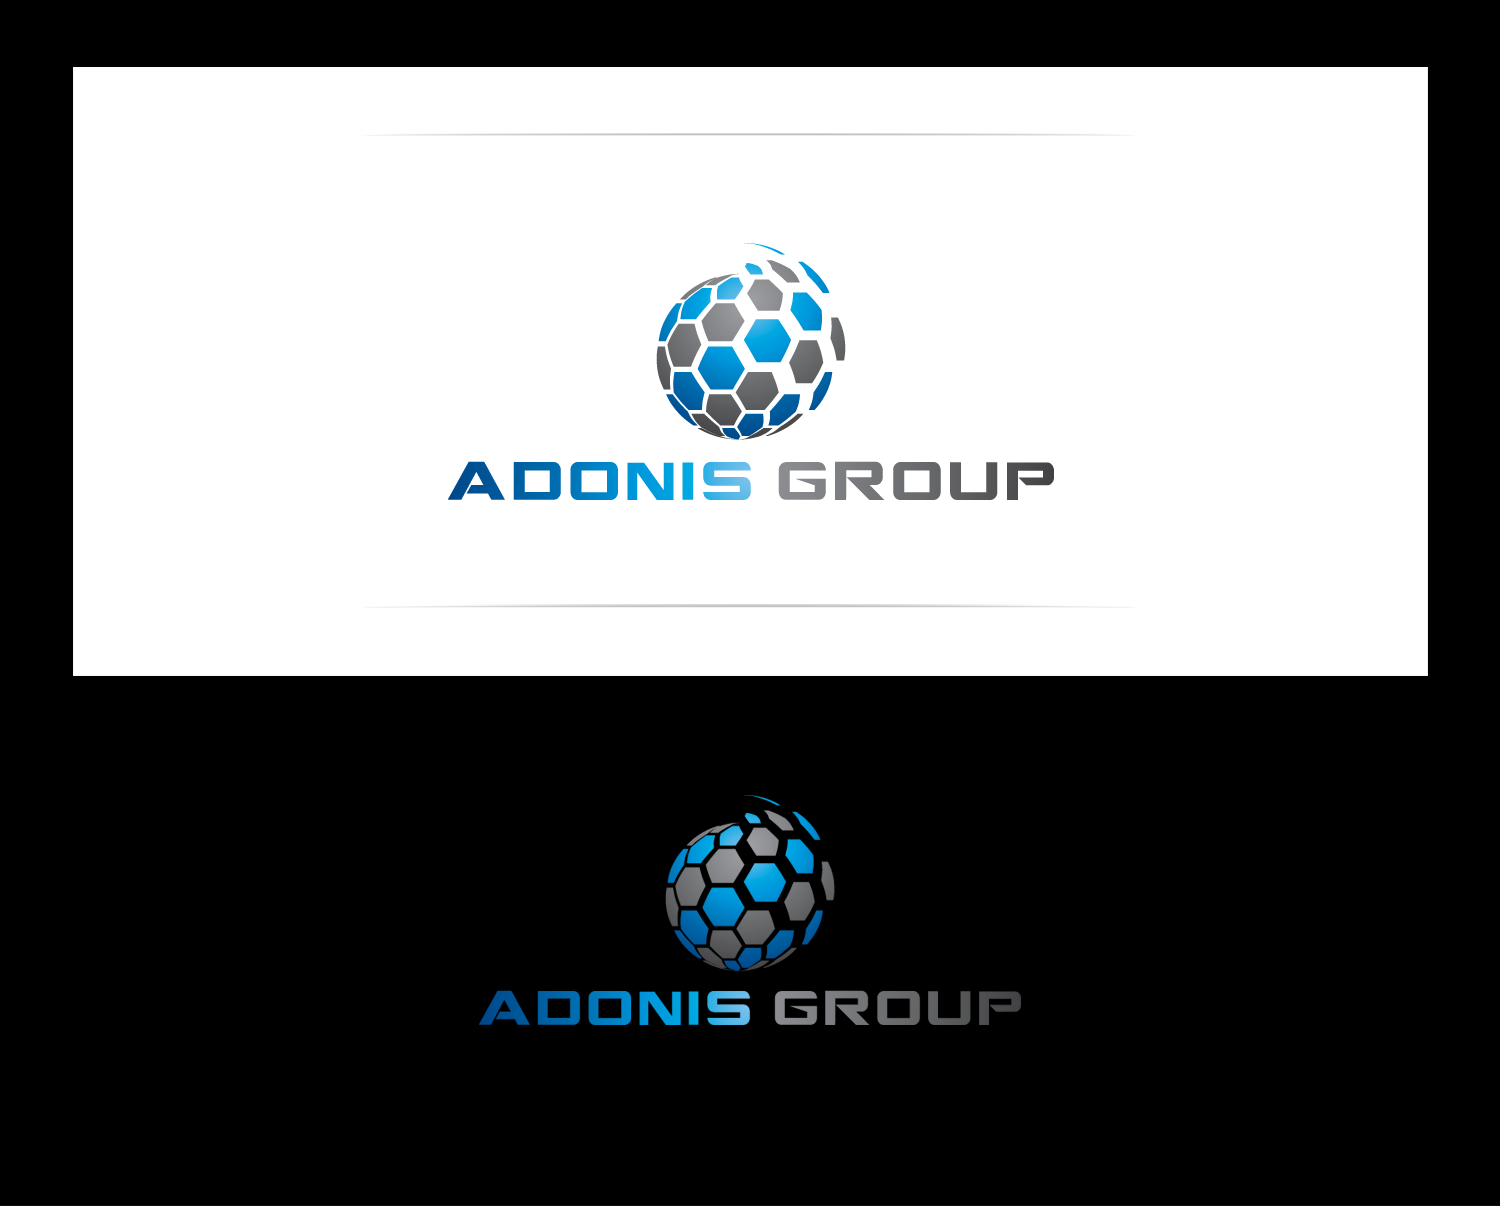 Create a logo for a nutritional management group